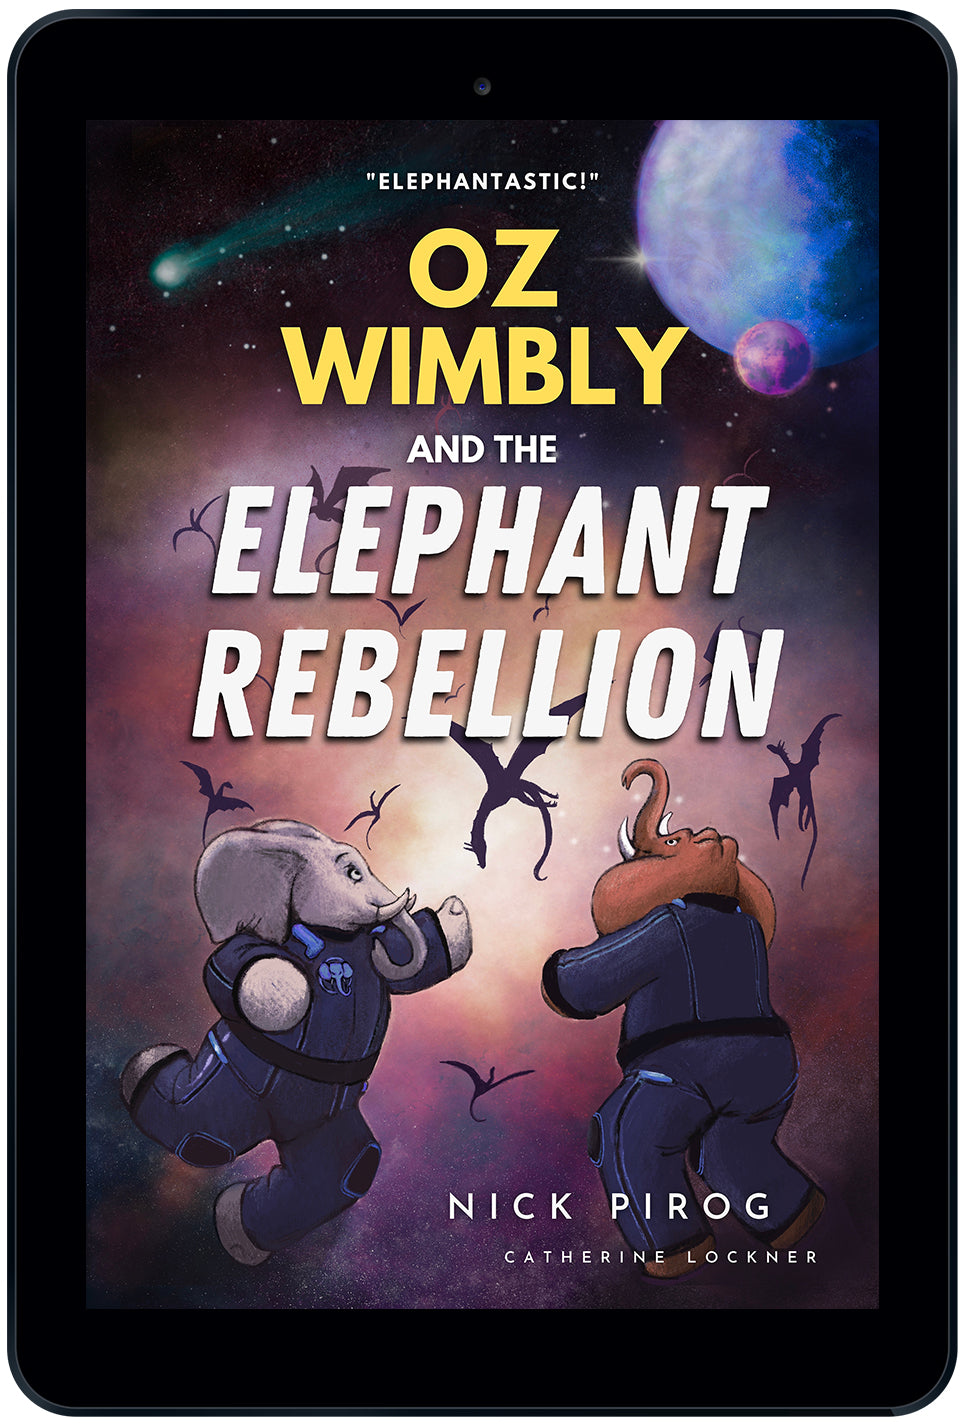 Oz Wimbly and the Elephant Rebellion